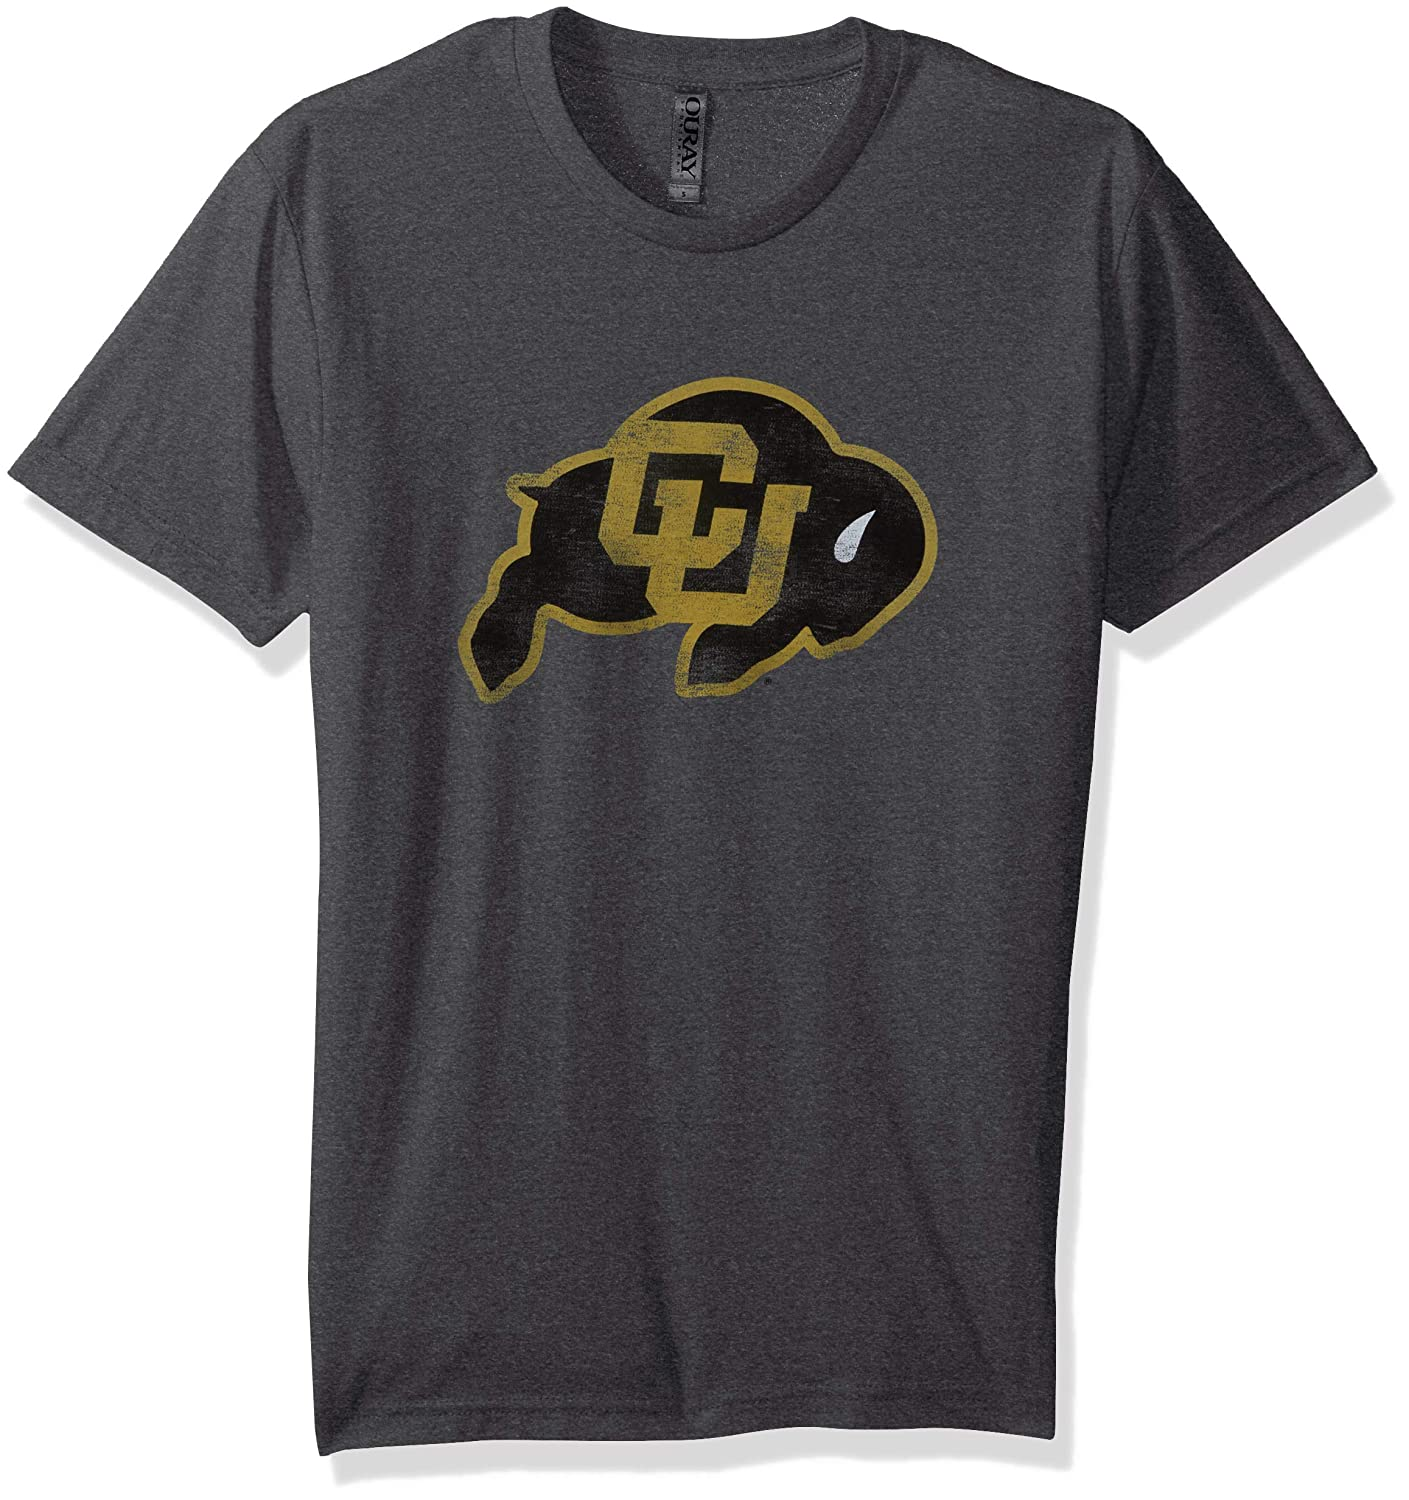 NCAA Colorado Buffaloes Mens Tri Blend Short Sleeve Tee Small Premium Heather